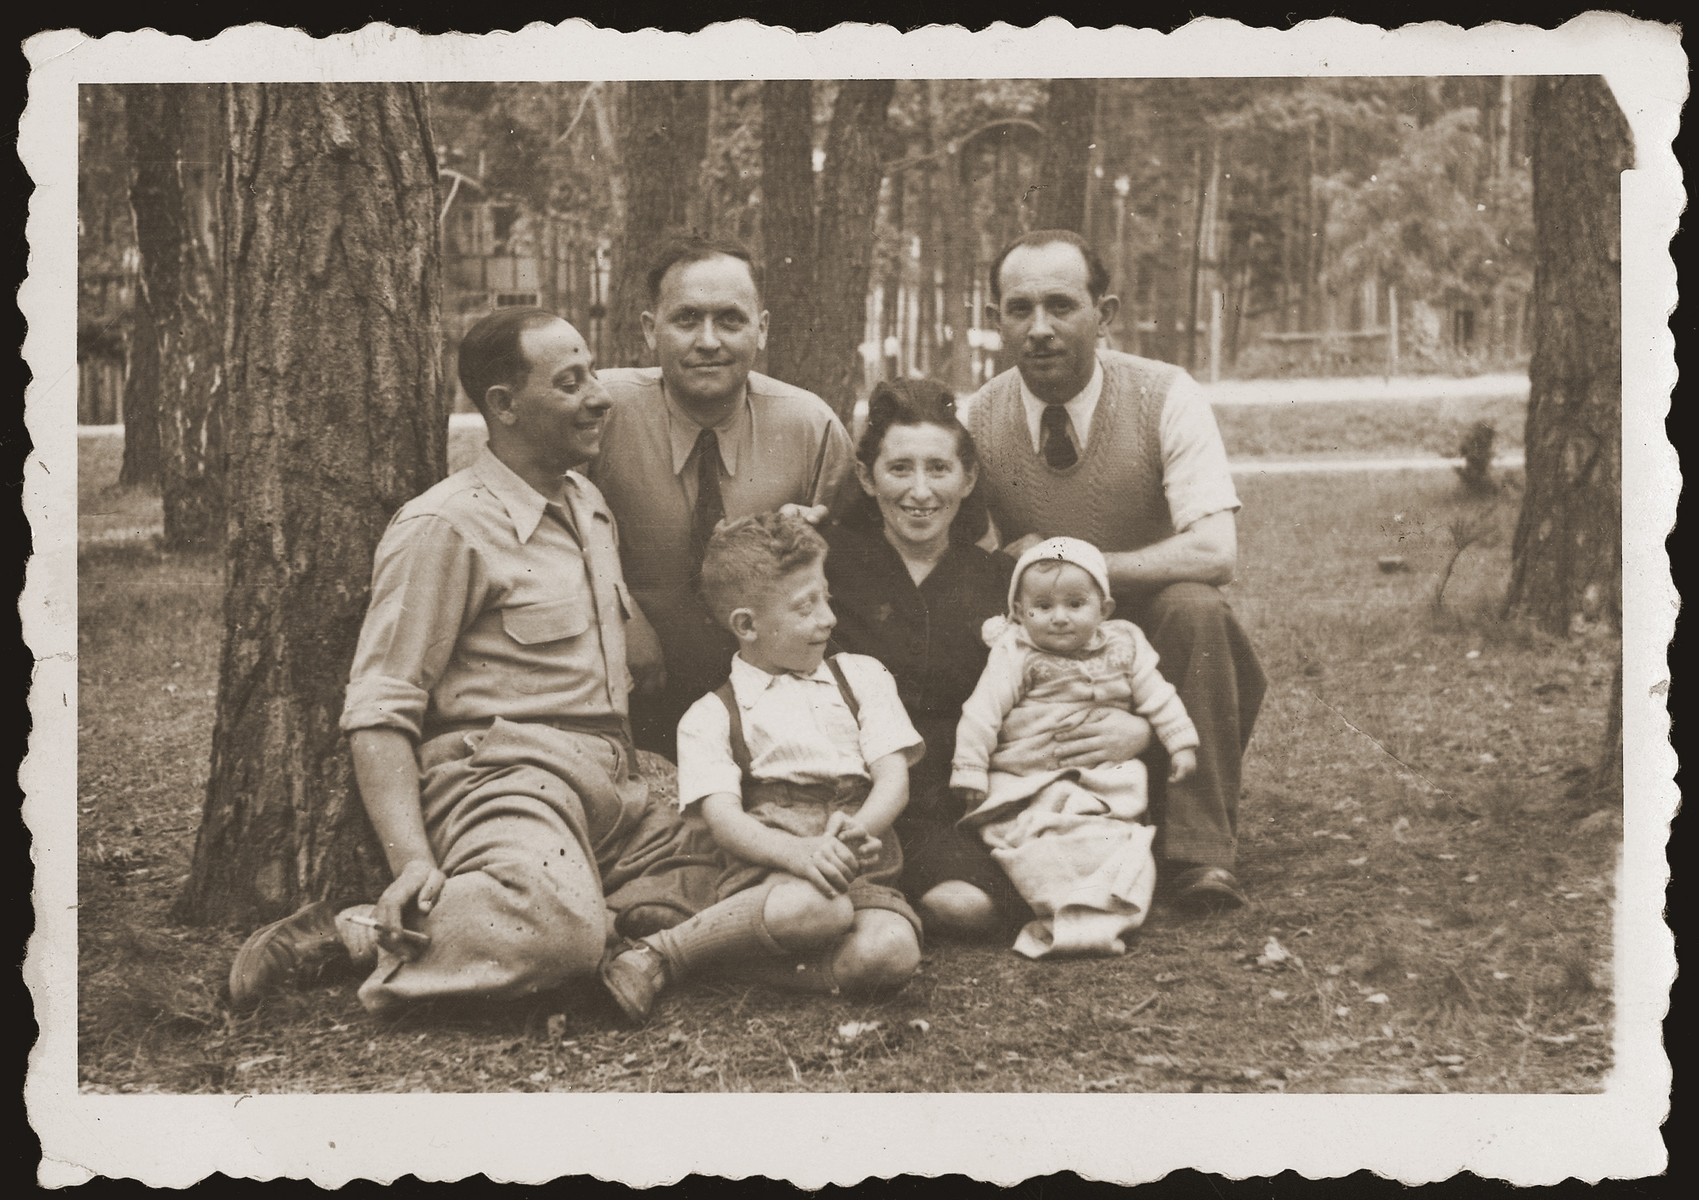 Mania Gryniewicz, seated, with her children, Hania and Adam.  Gutman, her husband, is on the left.  First from right is Victor Jakubowicz, Mania's brother, who visited from Belgium. Second from left is Mosze Stawski, brother-in-law of Kalman Jakubowicz.